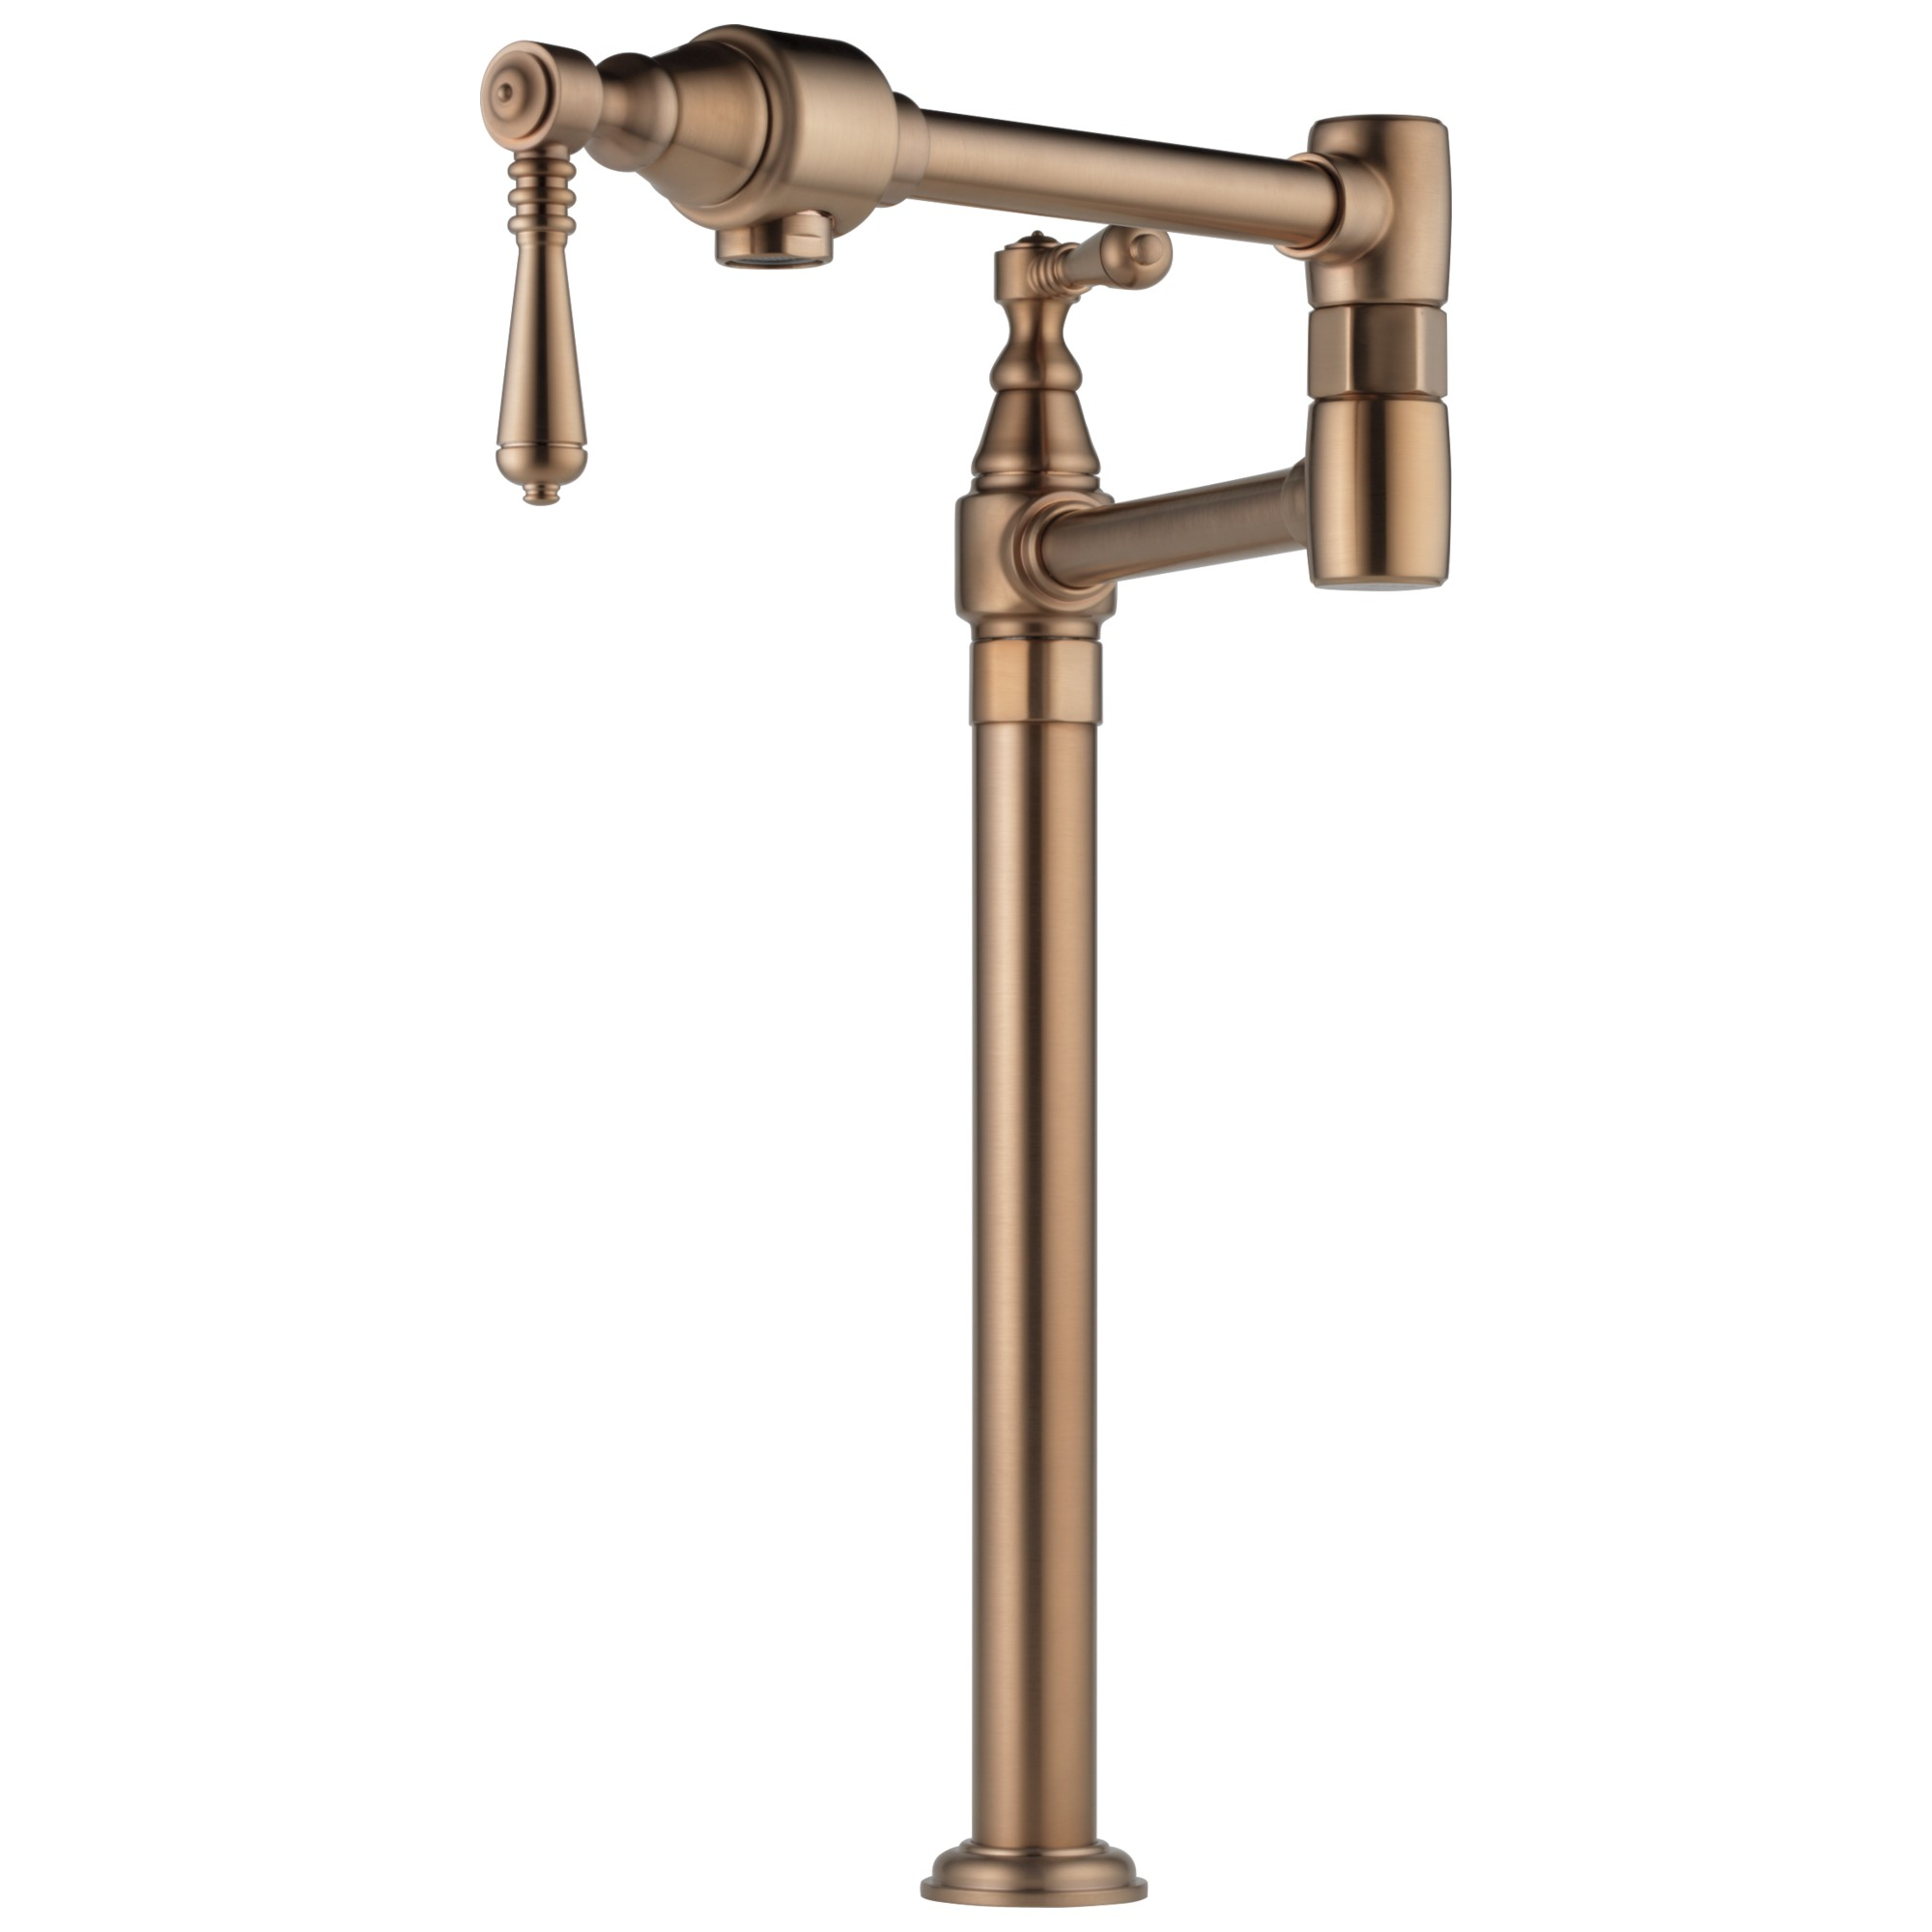 Brizo 62710LF-BZ Traditional Deck Mount Pot Filler Faucet - Brilliance Brushed Bronze